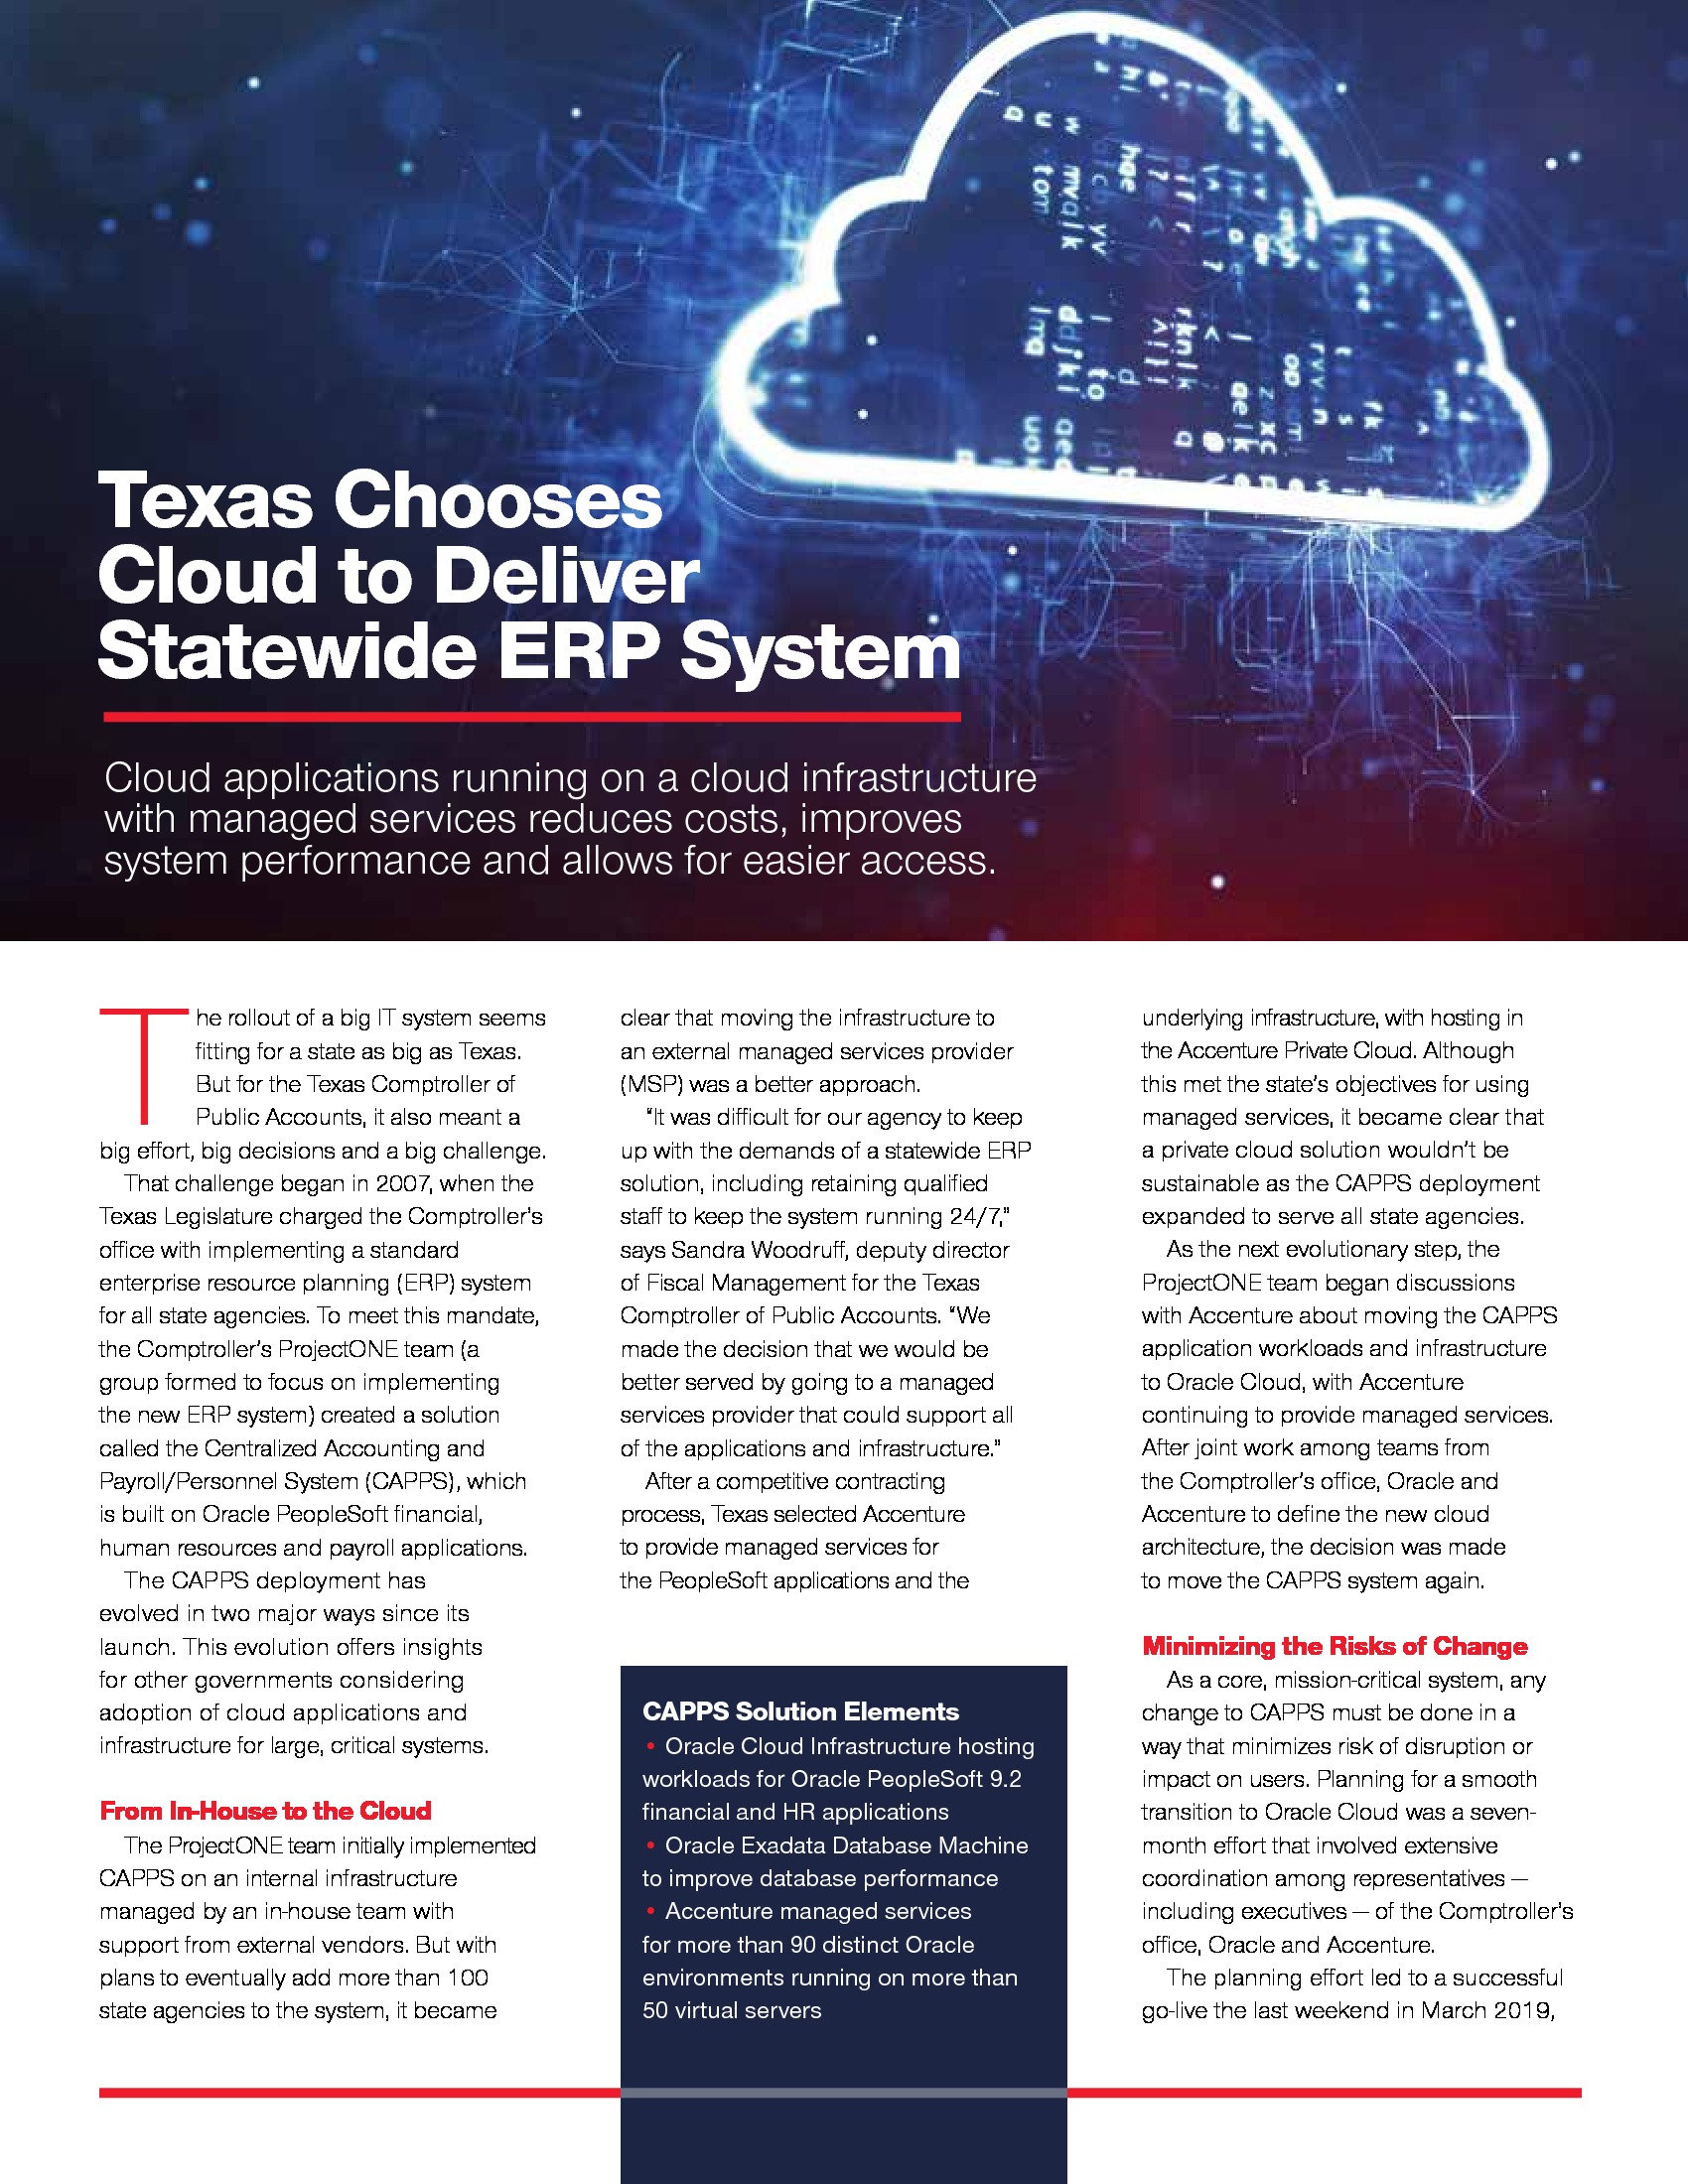 Texas Chooses Cloud to Deliver Statewide ERP System